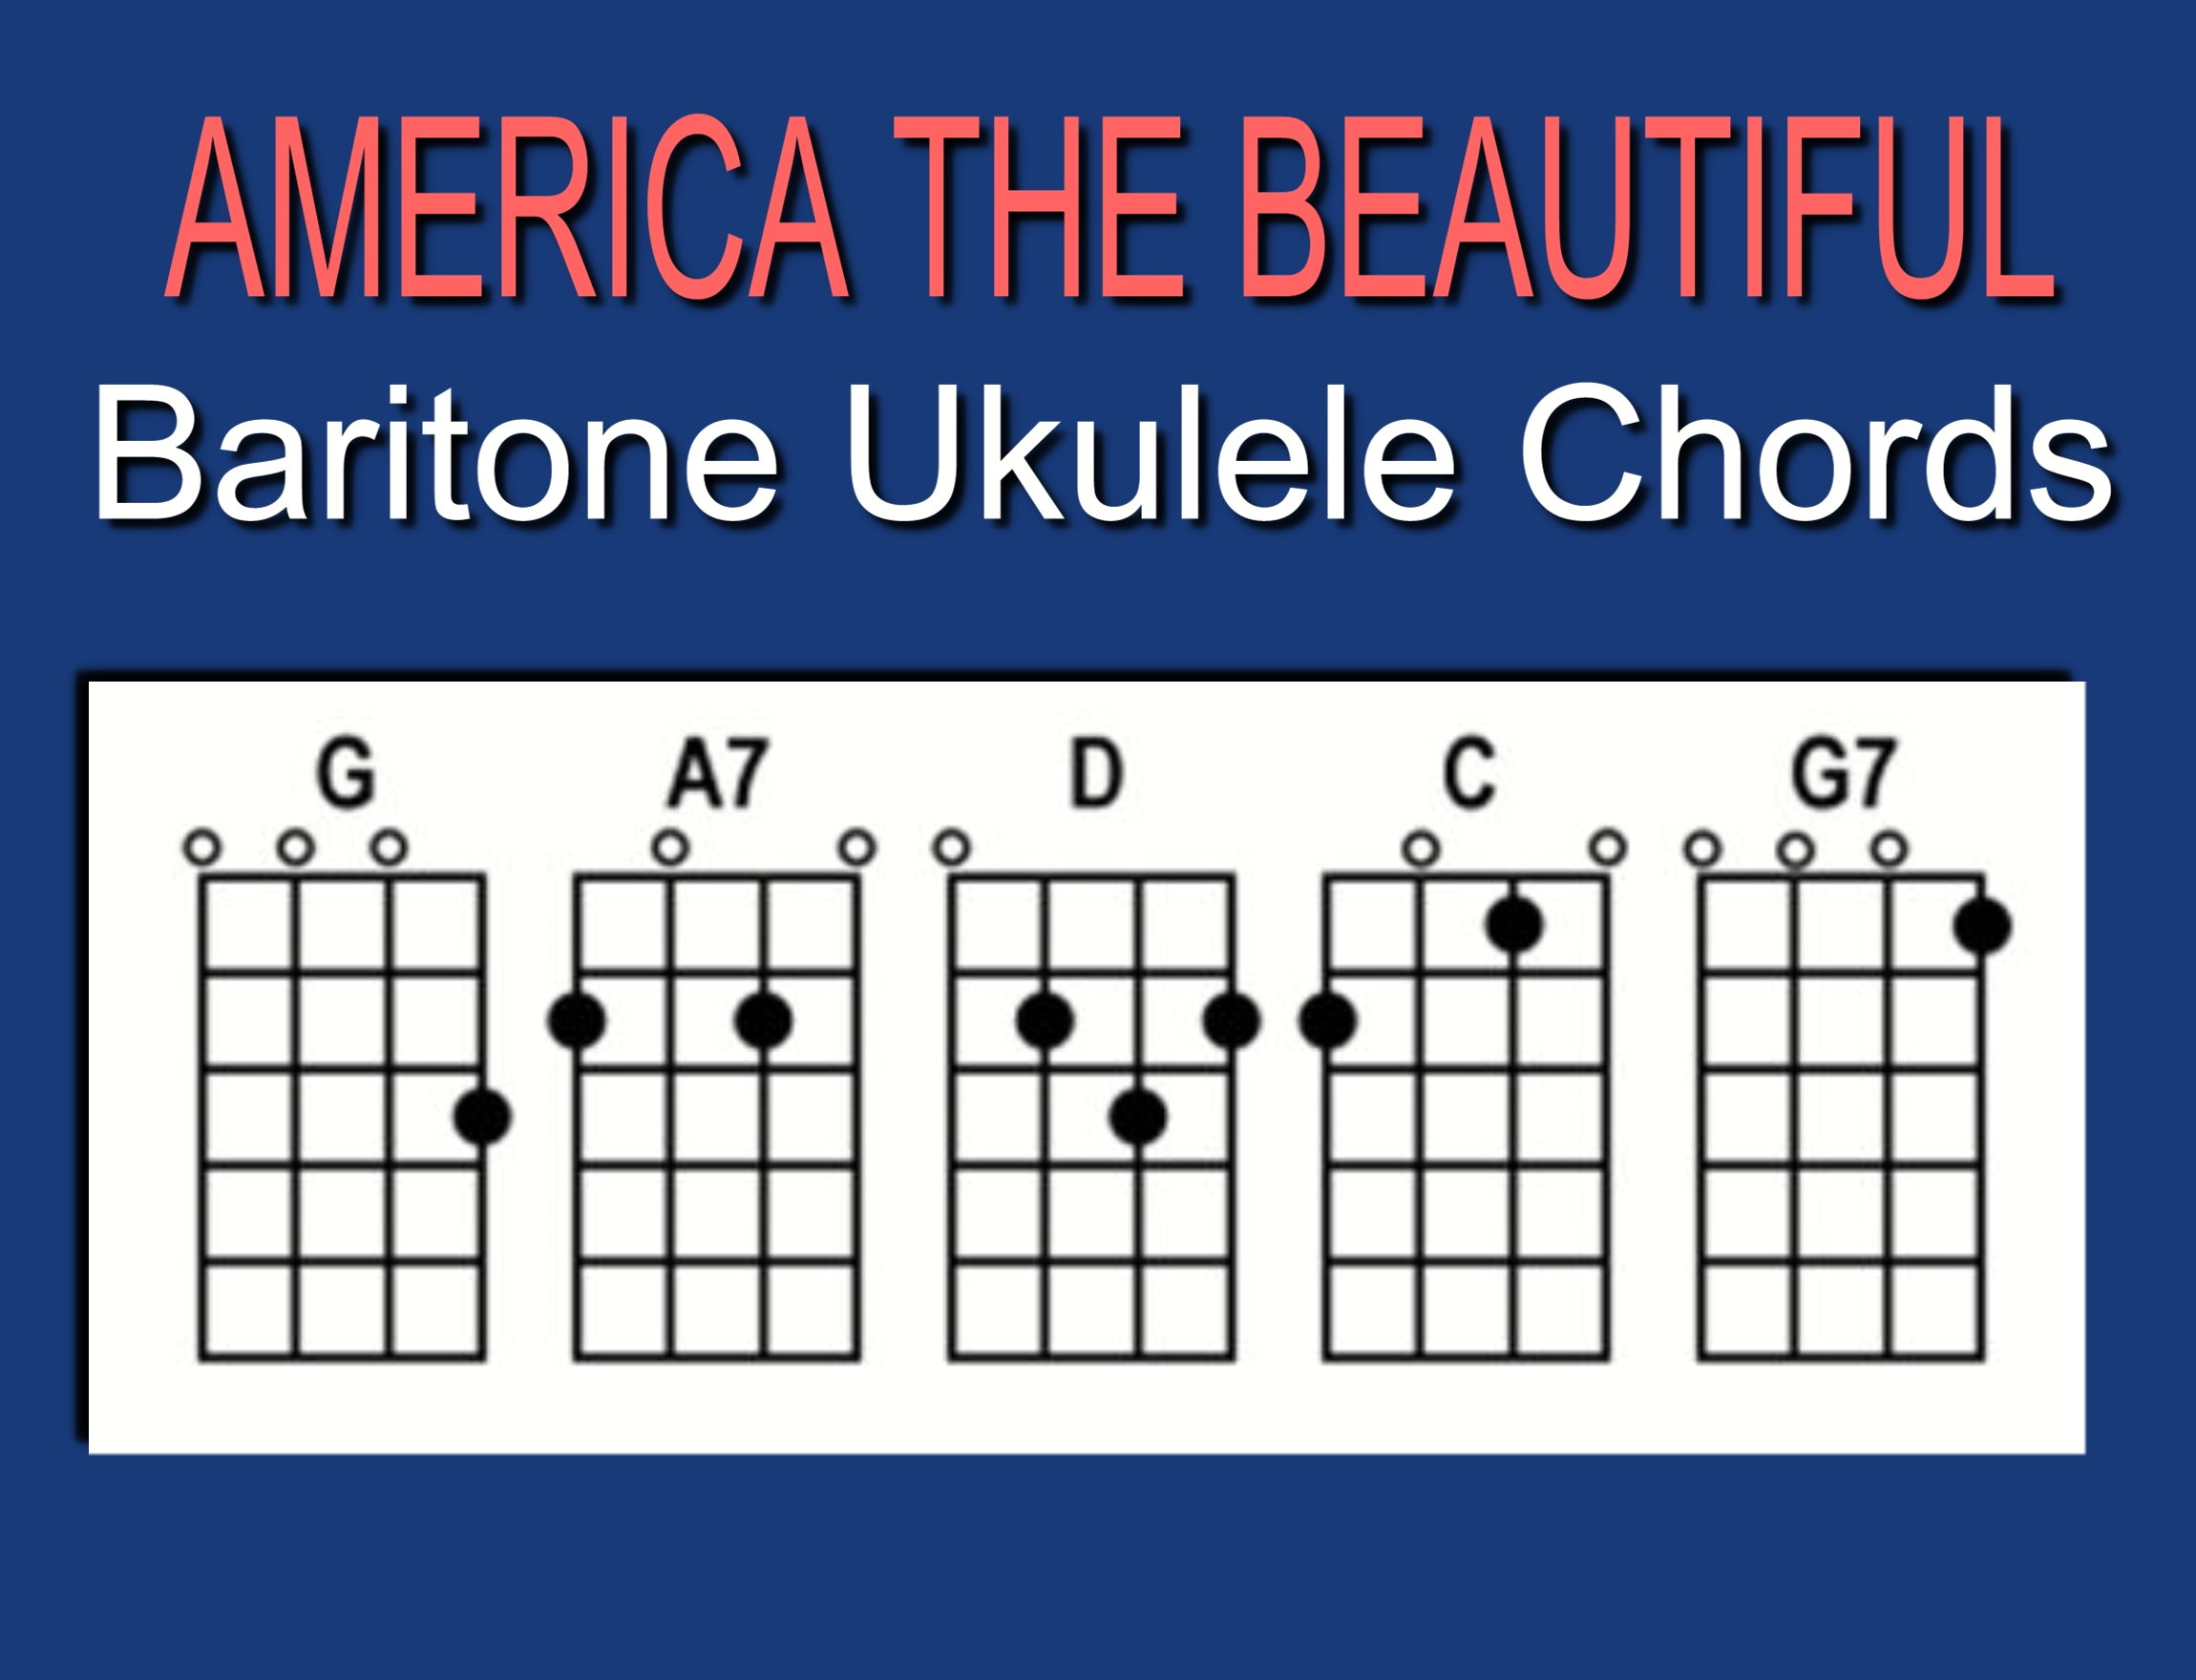 America the beautiful a special veterans day offering from america baritone chords slide hexwebz Image collections